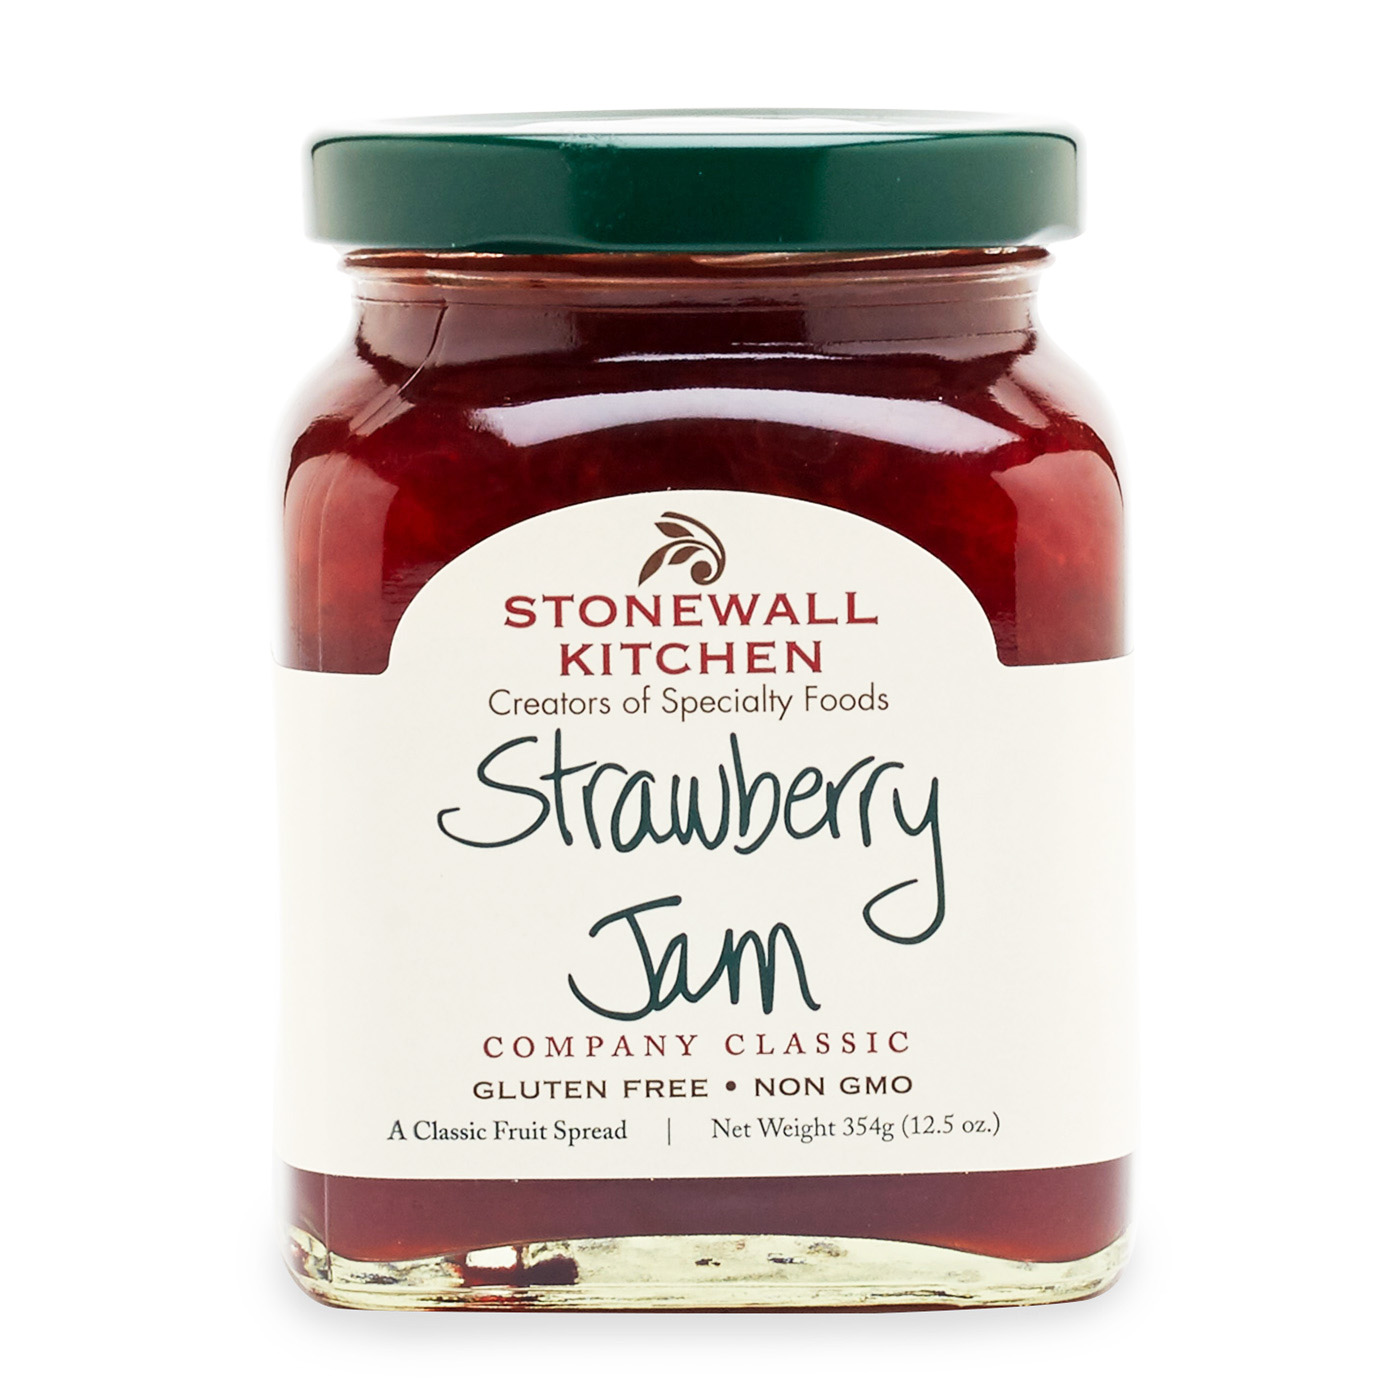 stonewall kitchen com aid oven strawberry jam jams preserves and spreads